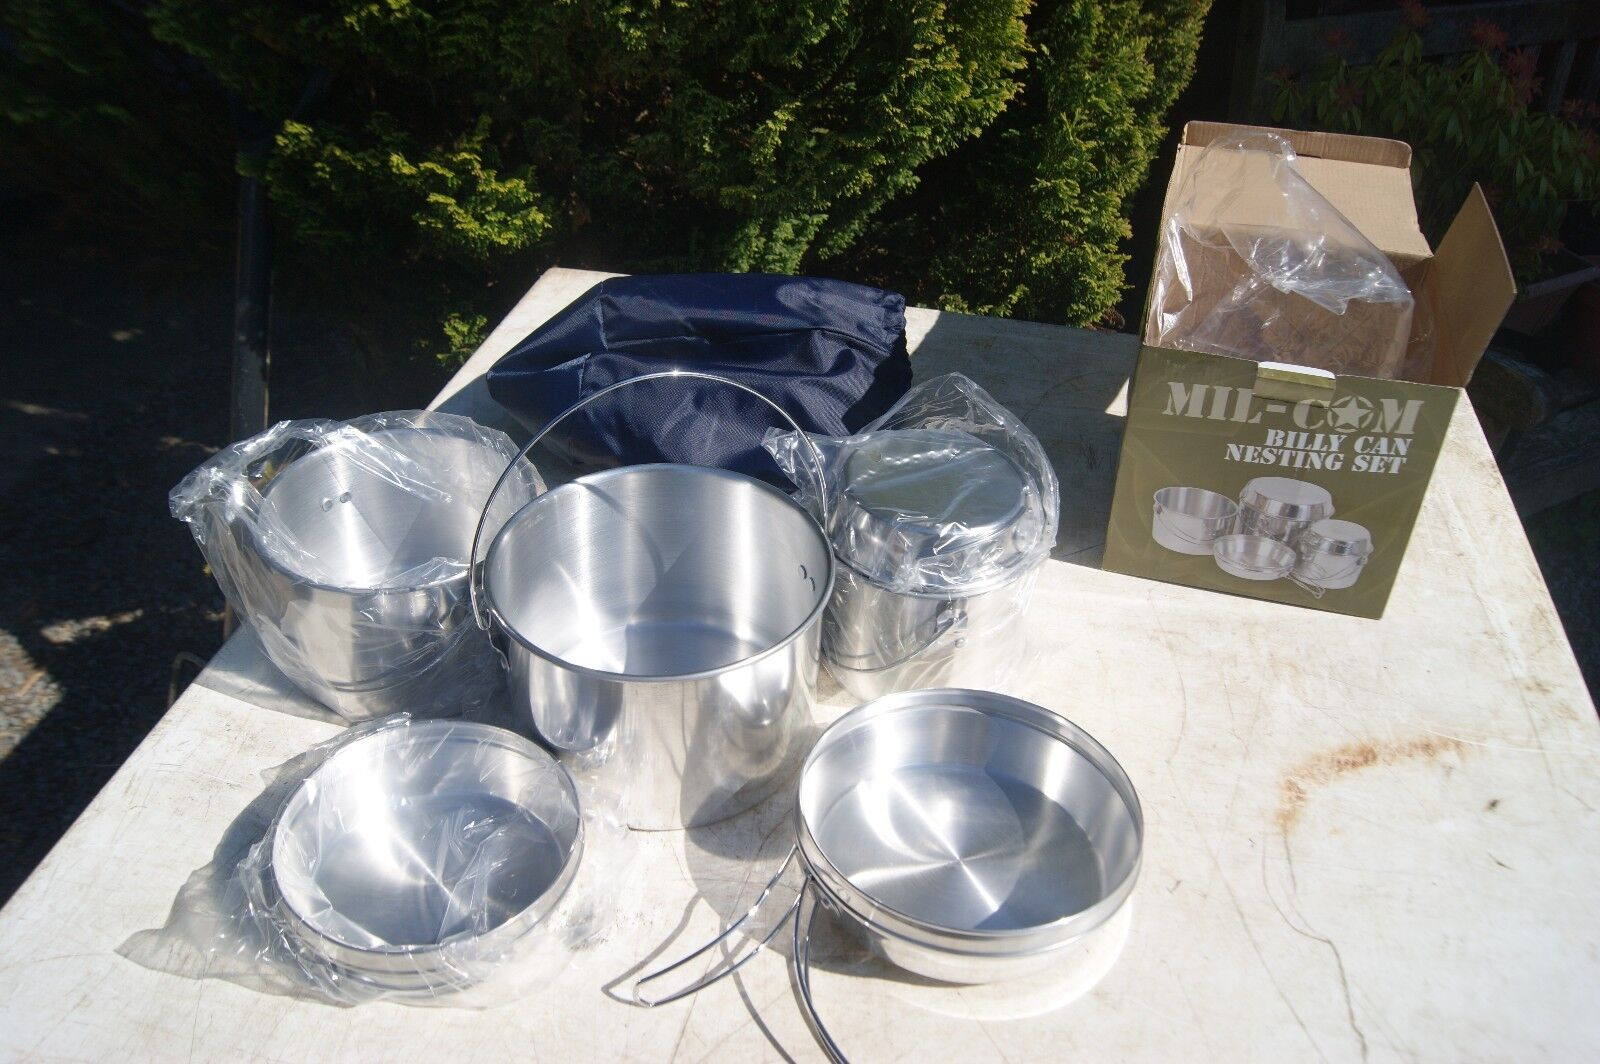 Nesting Billy Can 6 Piece Cooking Outdoor Camping Stove Pots & Pans Nest Tin Set